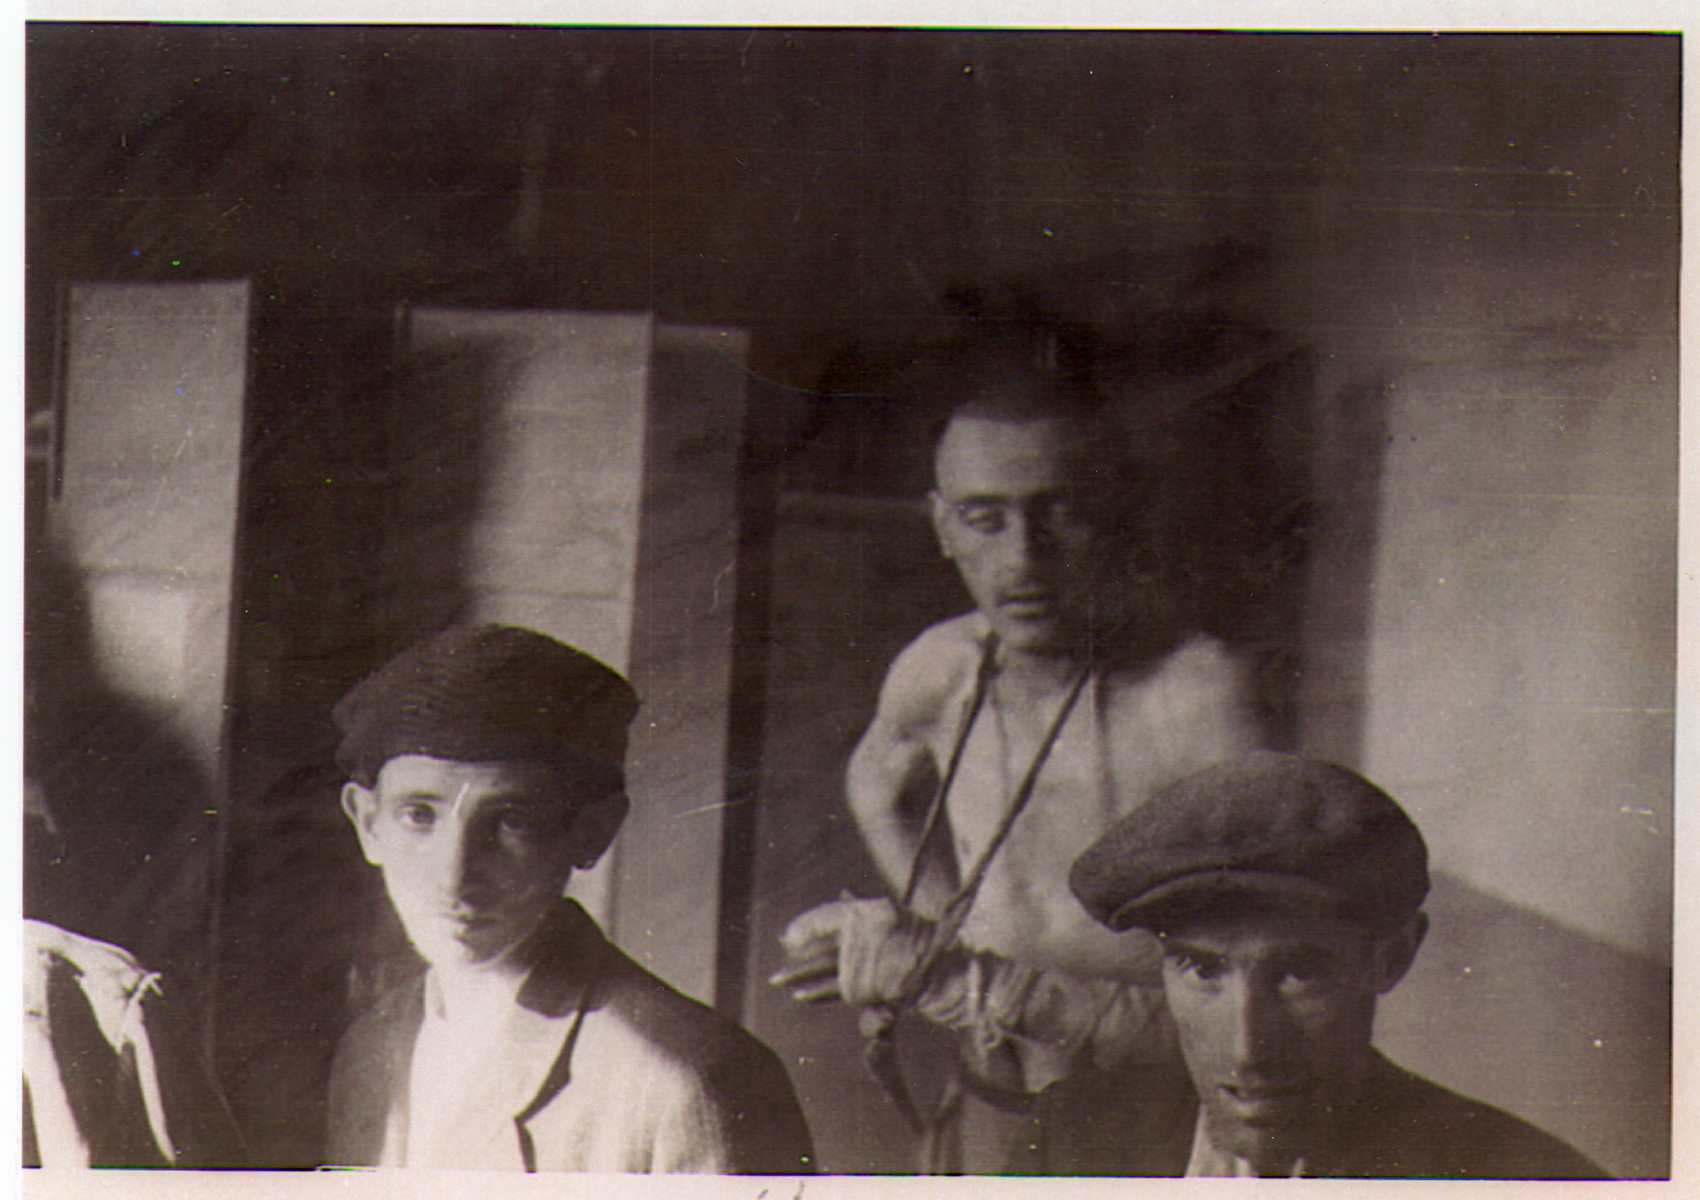 Survivors of the Hanover-Ahlem concentration camp pose inside of a barrack.